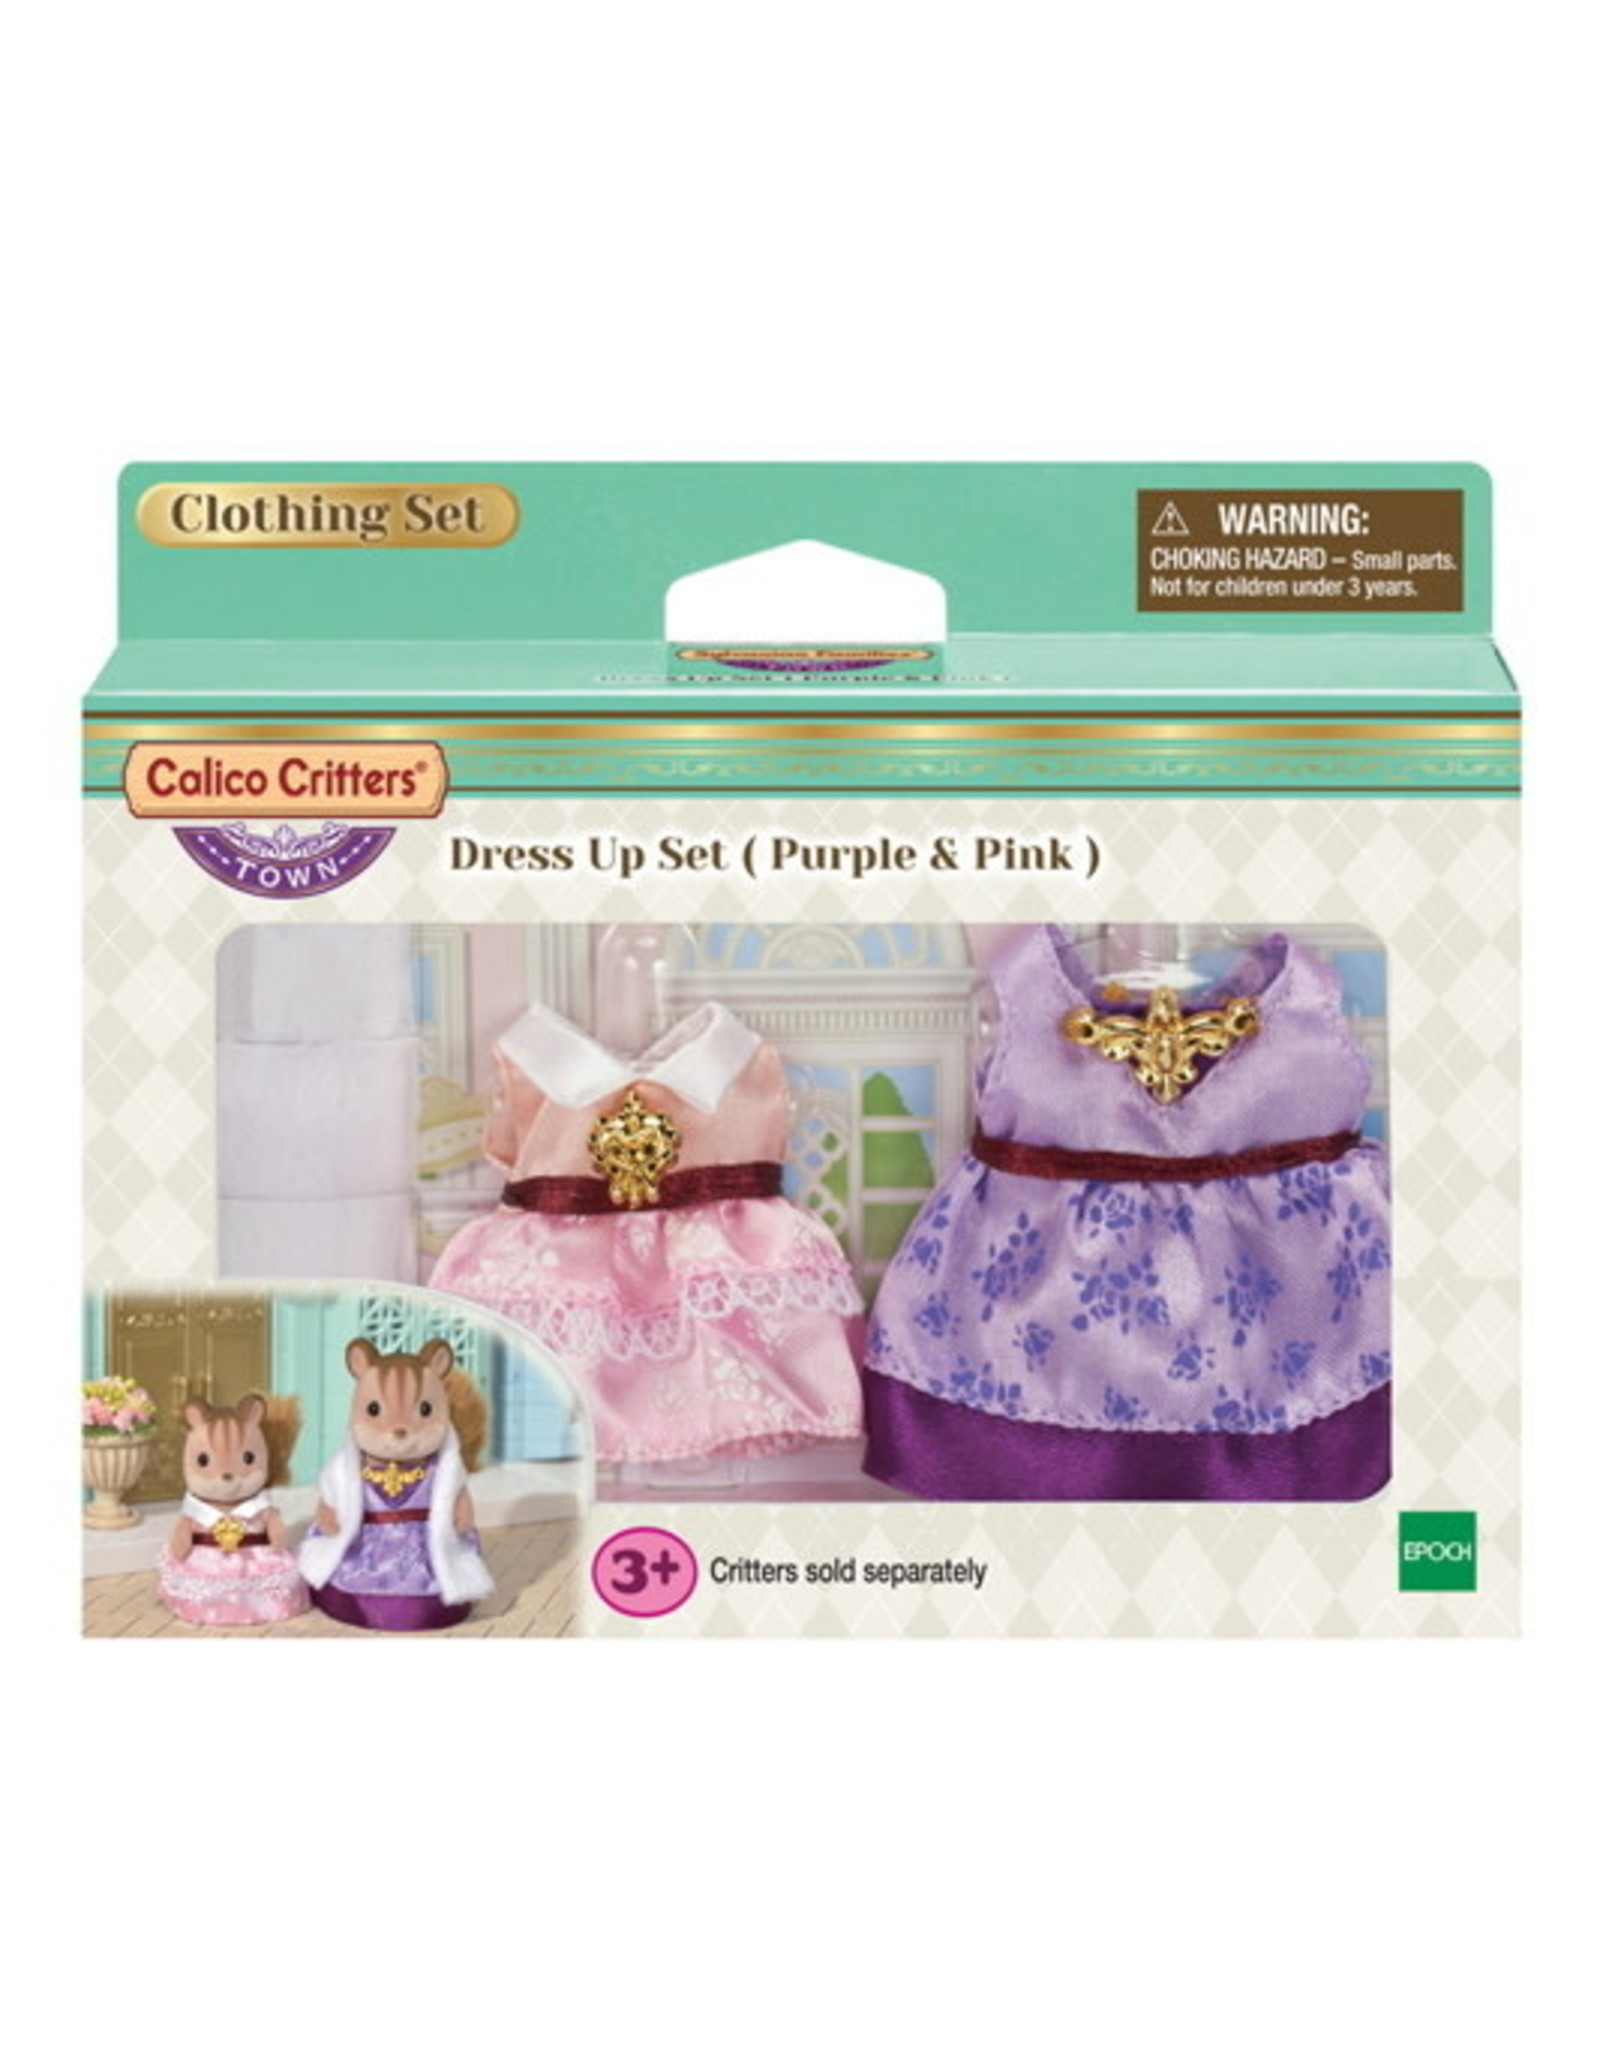 Calico Critters Calico Critters Dress Up Purple and Pink